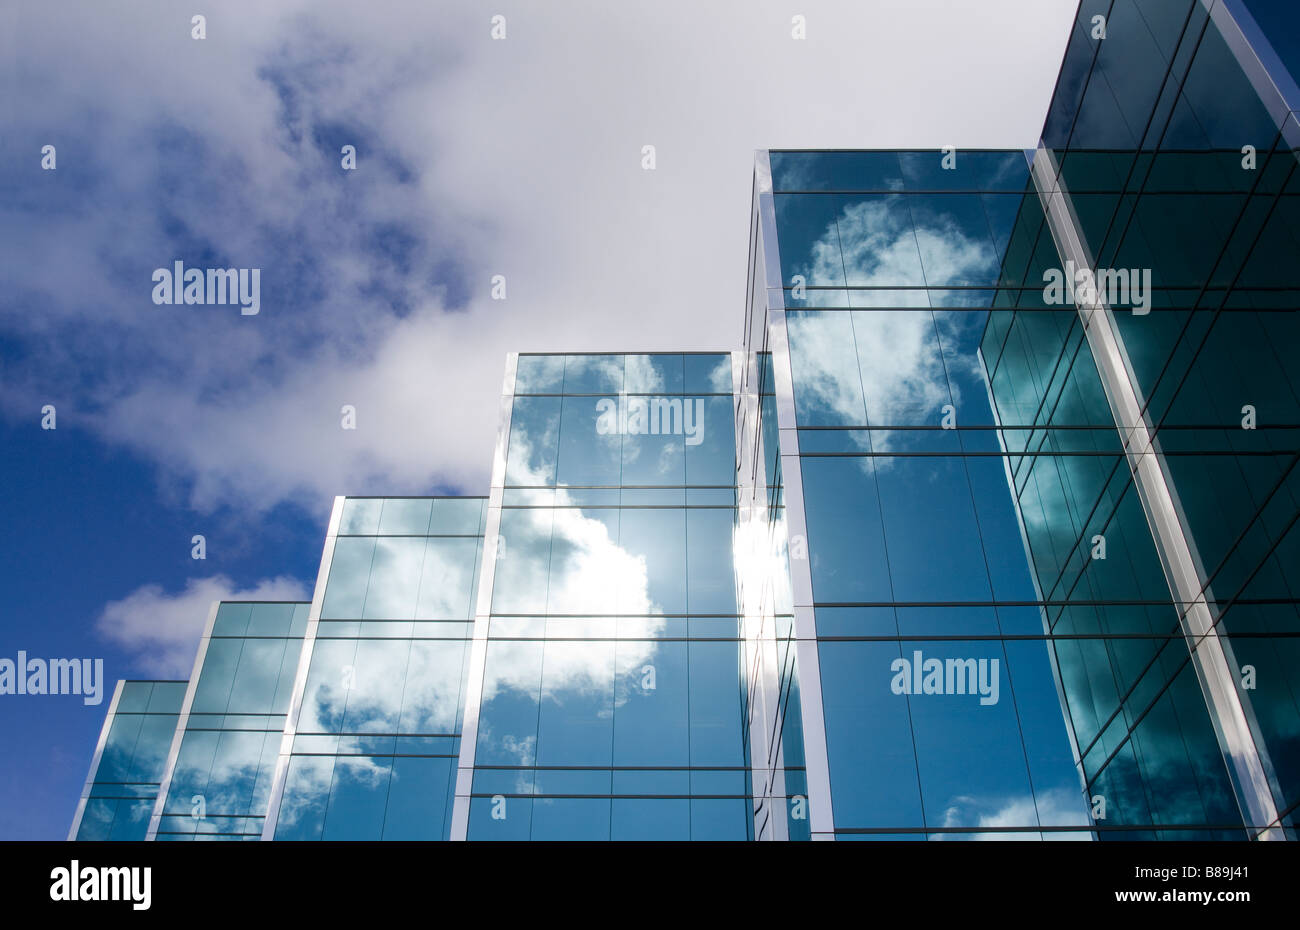 Five towers of a sleek modern glass office building with clouds and sky reflecting on the surface of the buildings - Stock Image